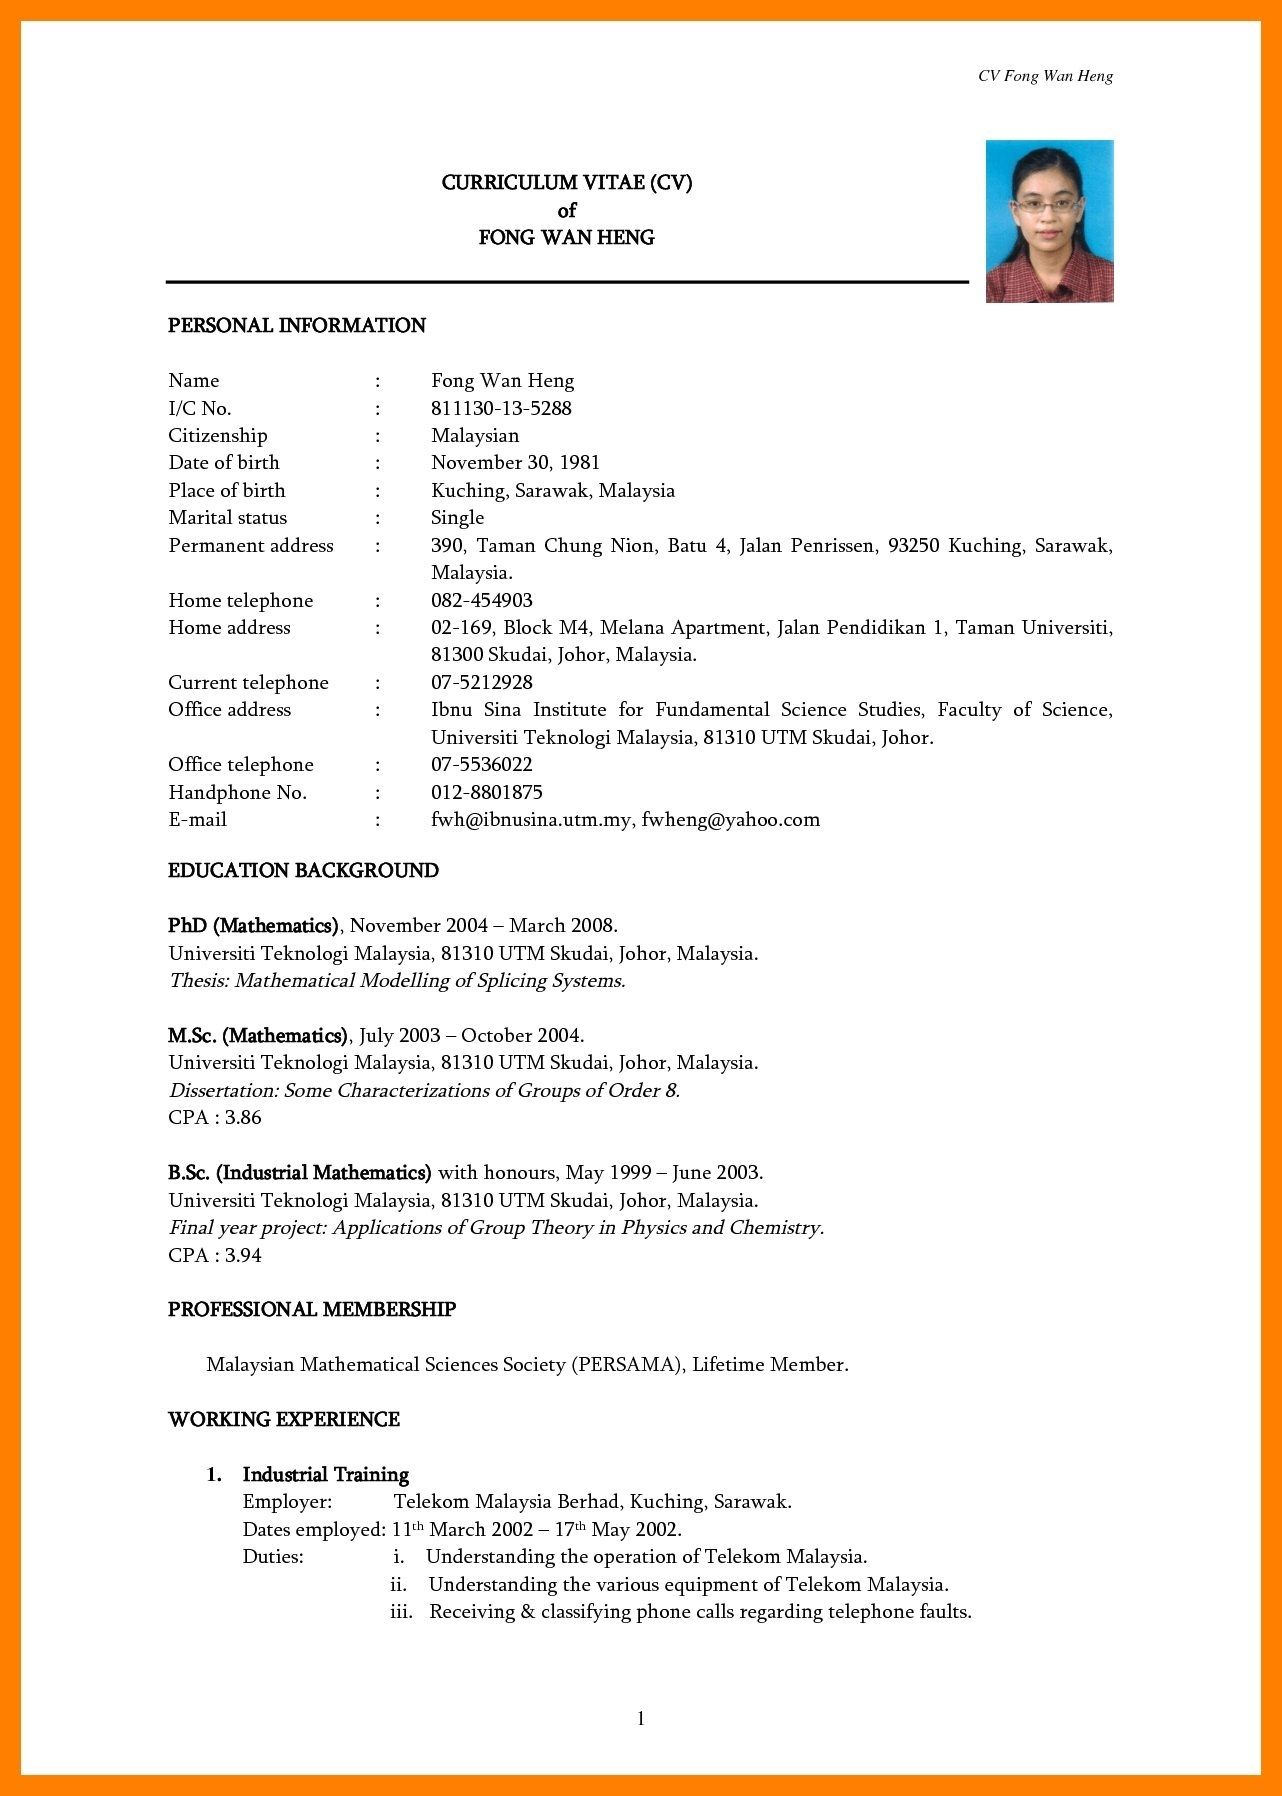 Simple Resume Template Malaysia Free Download With Simple Resume Format Free Download Free Resume Template Download Simple Resume Format Simple Resume Template